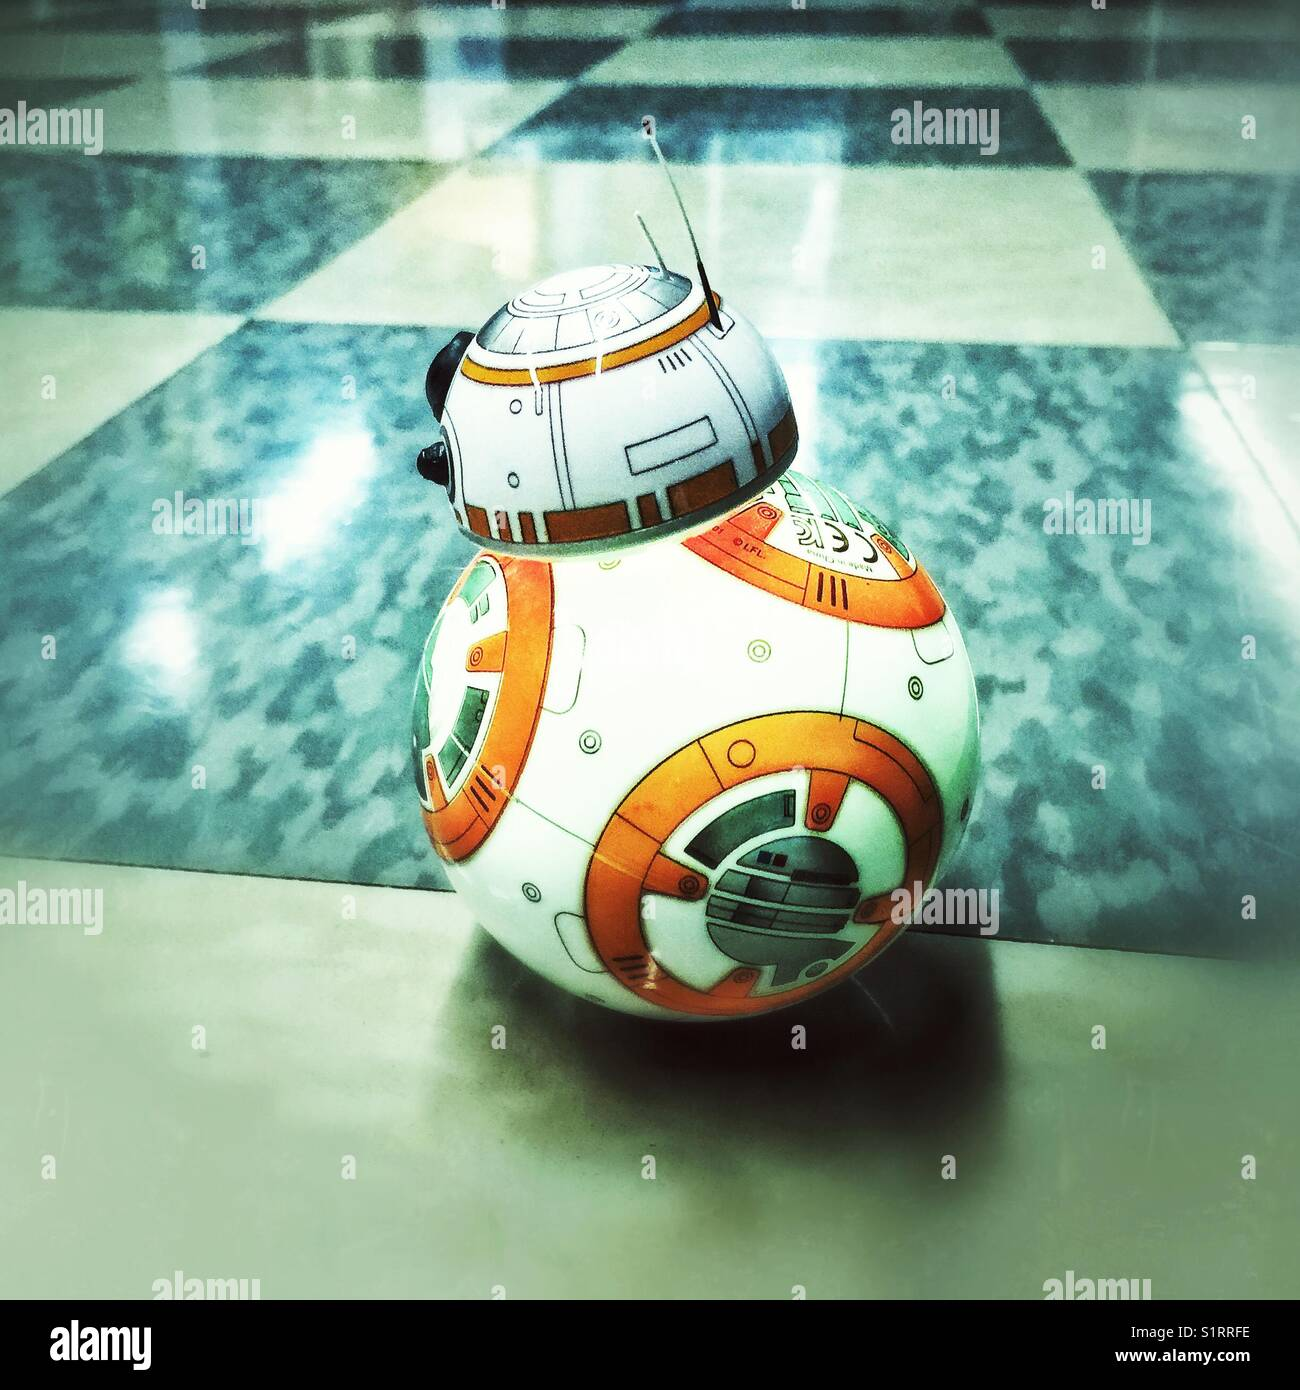 BB8 programmable toy on the floor - Stock Image